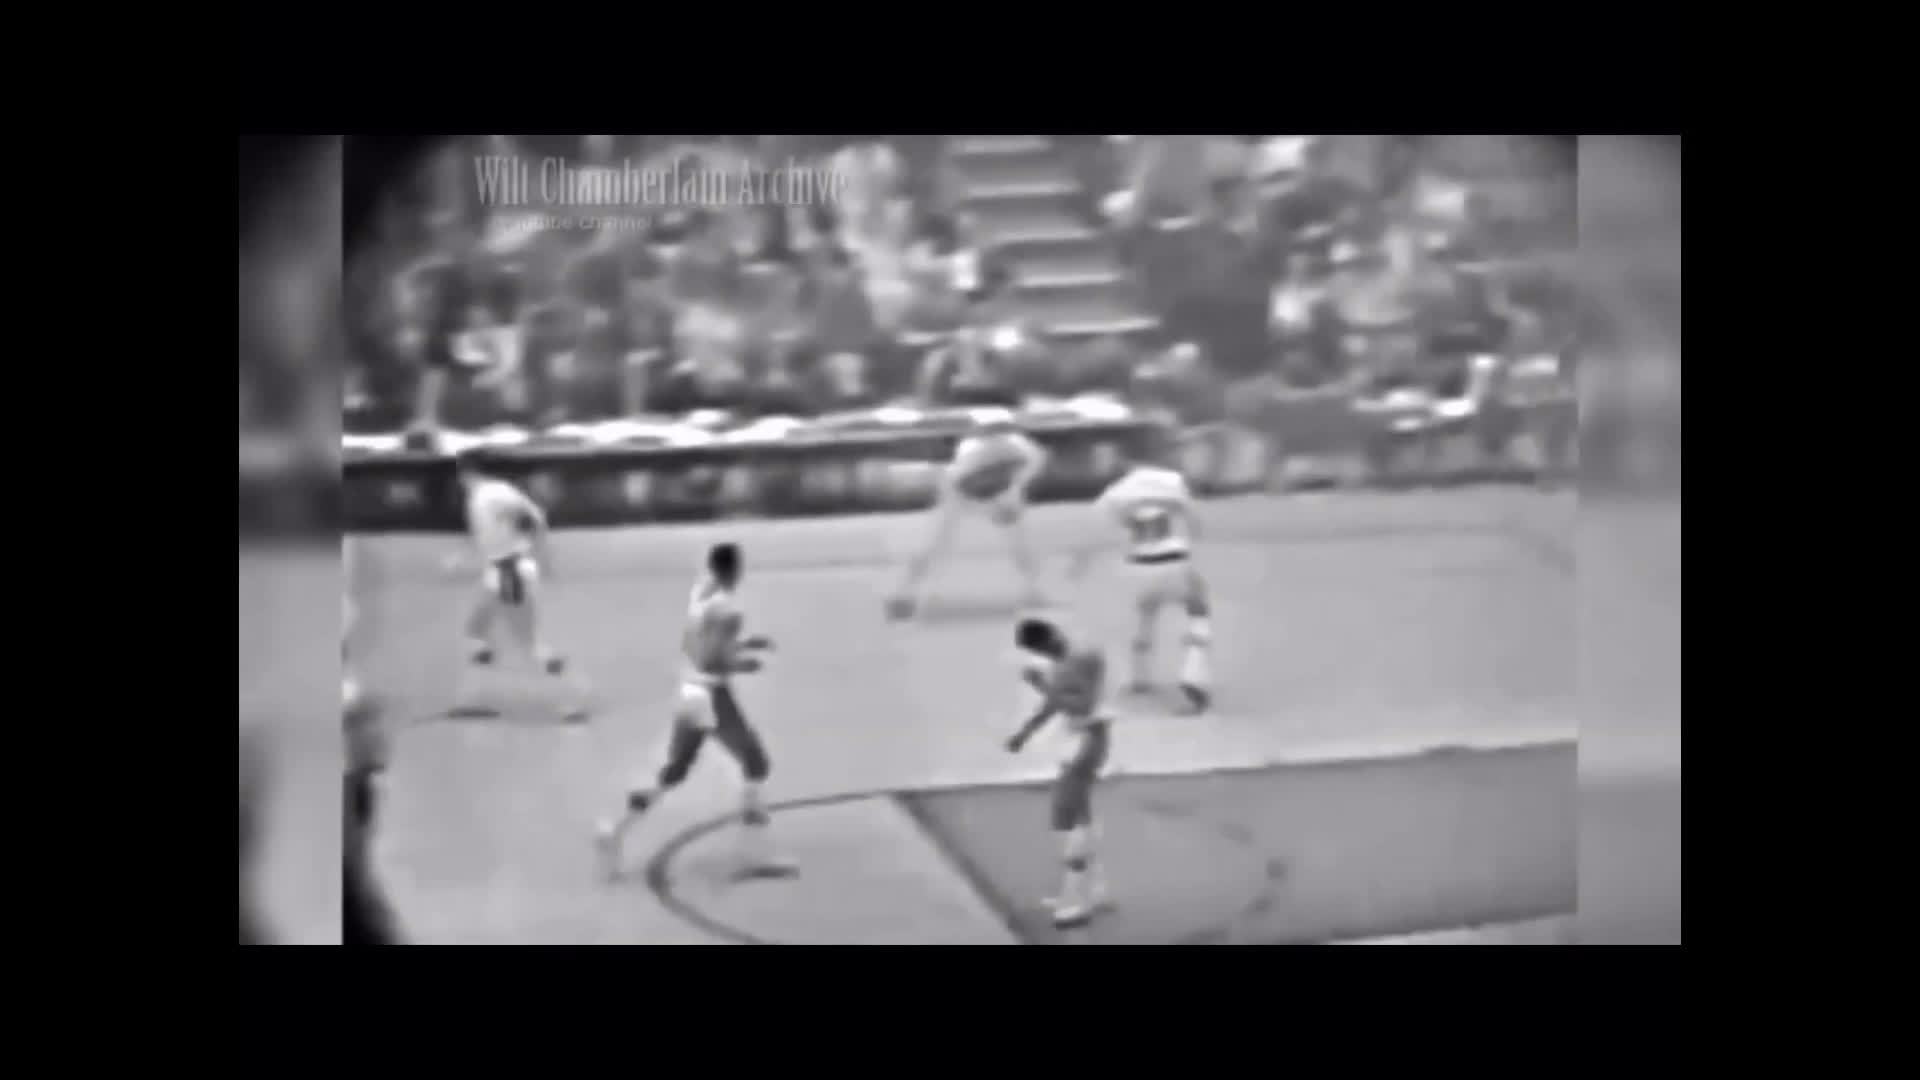 """Highlight Reel: Many consider old-school players """"Plumbers"""". I thought I would share a 90 second highlight reel of Bob Cousy aka the """"Hardwood Houdini"""". He had a flurry of moves and was one of the first to use the hook shot, back in the 50's."""